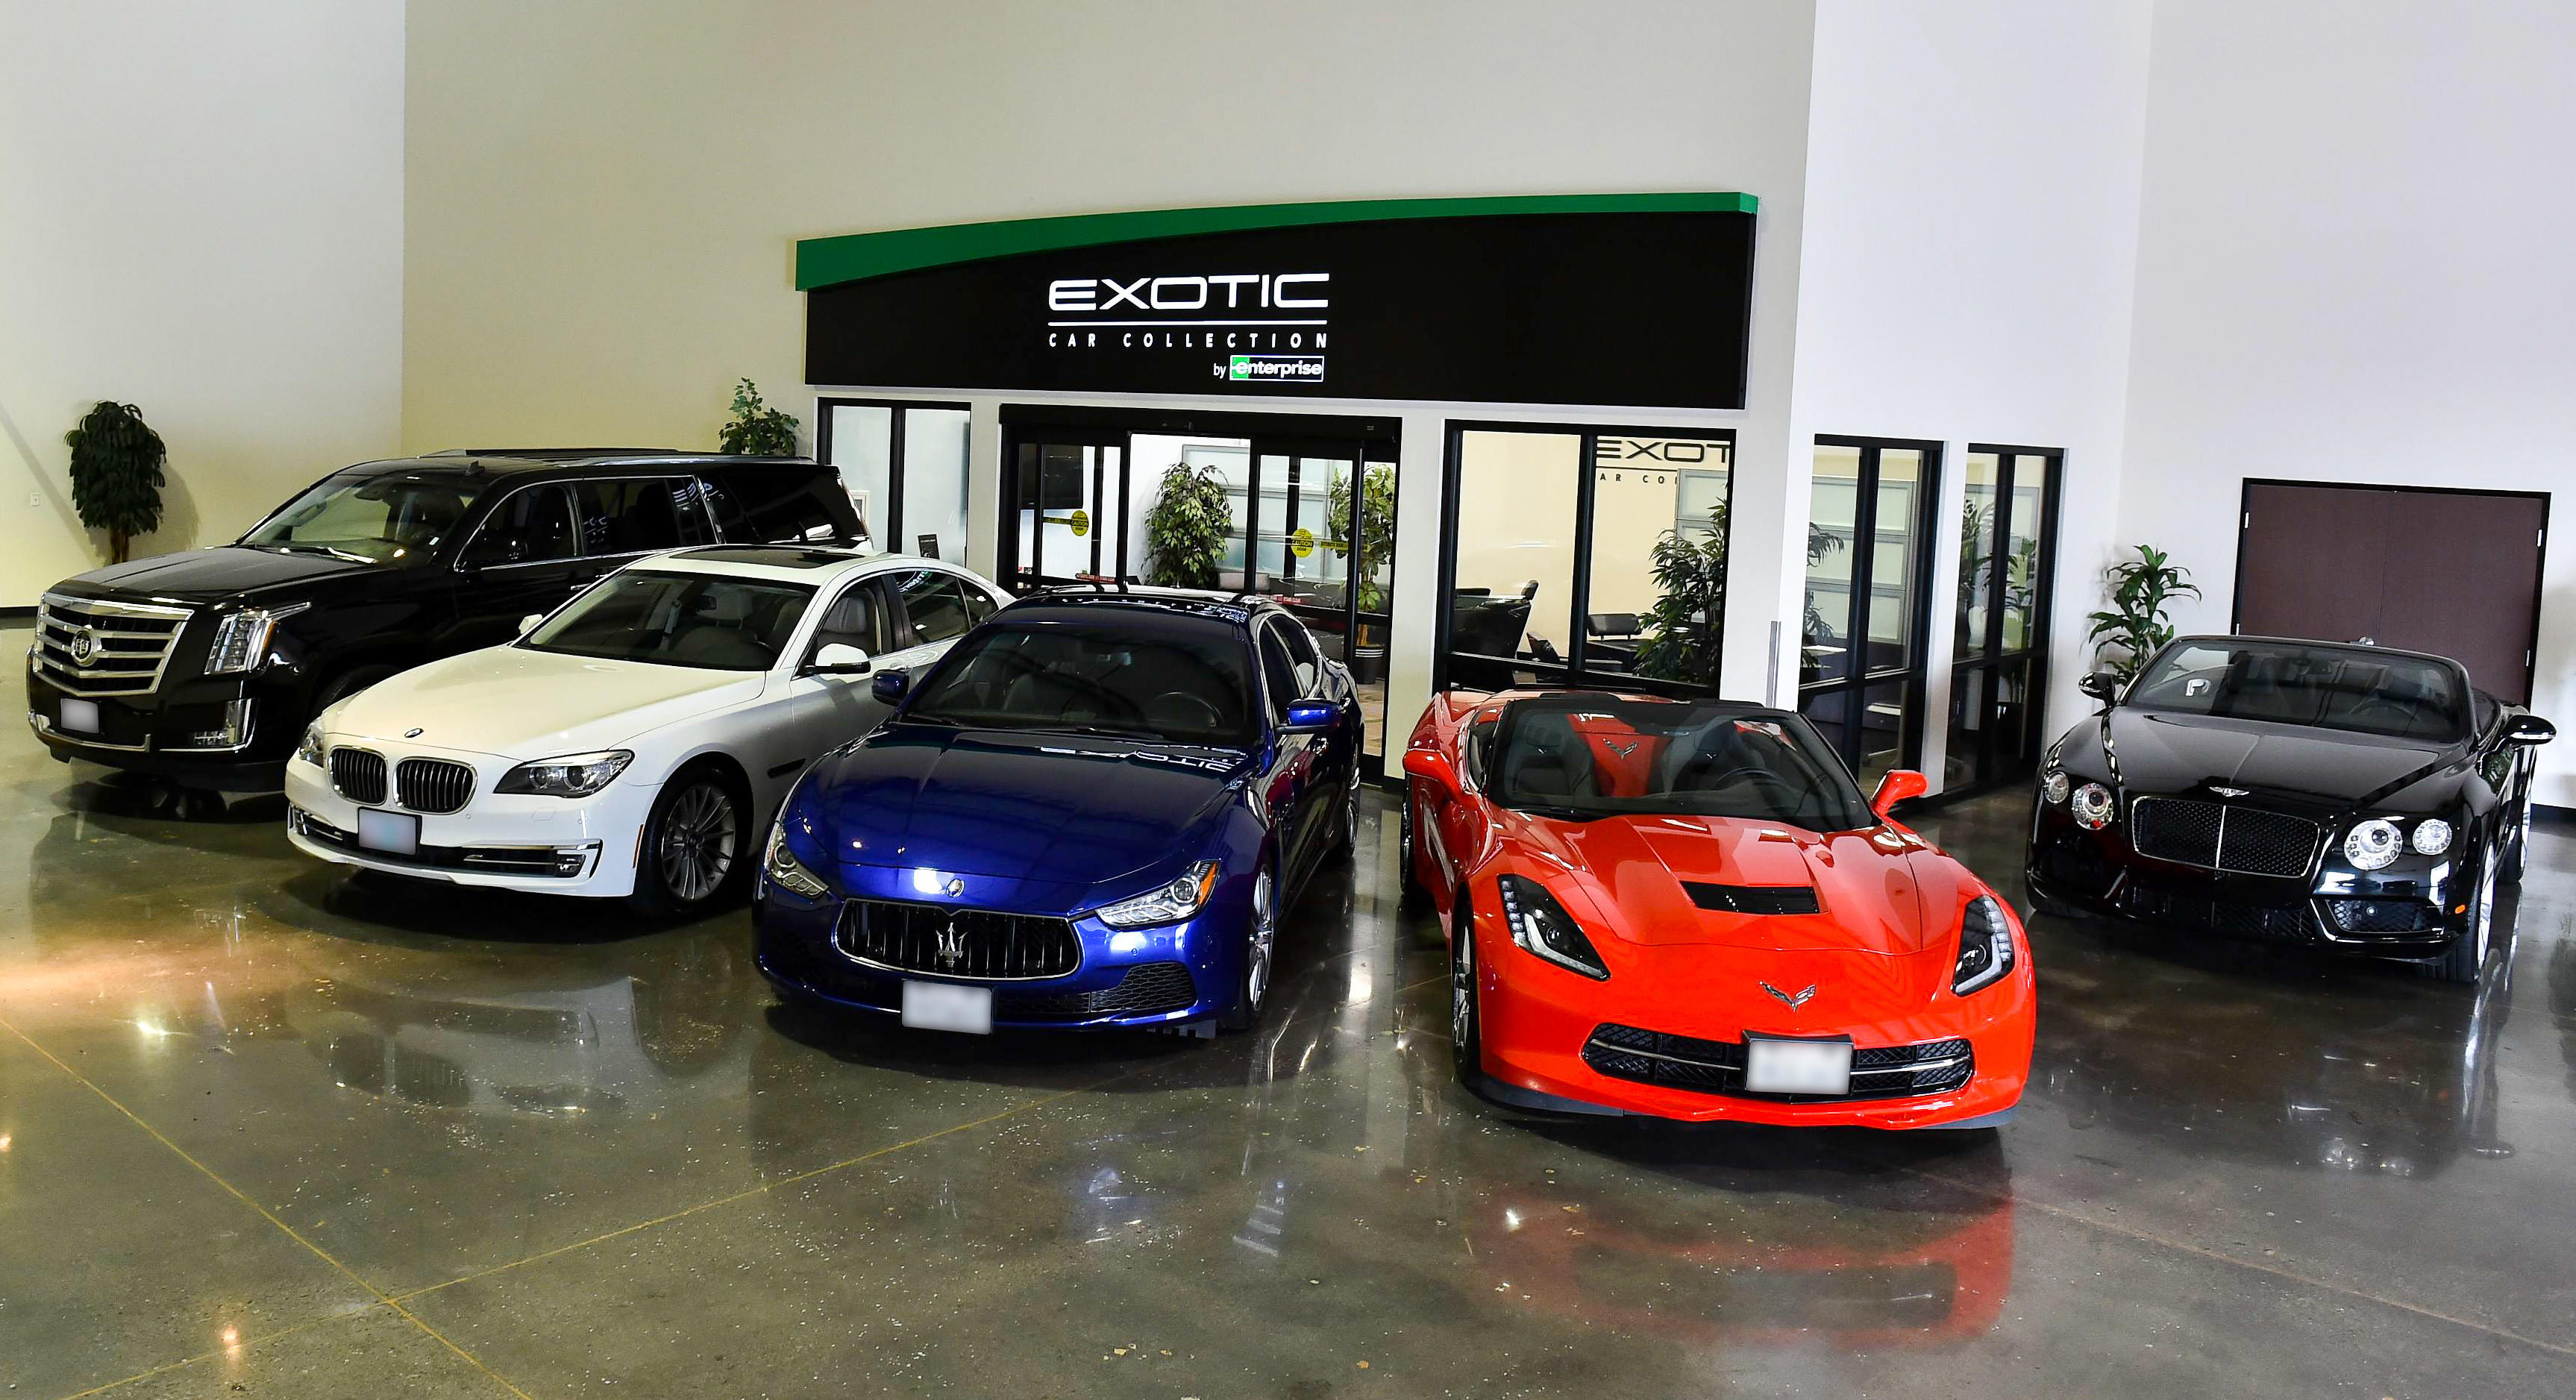 Exotic Car Collection by Enterprise image 2